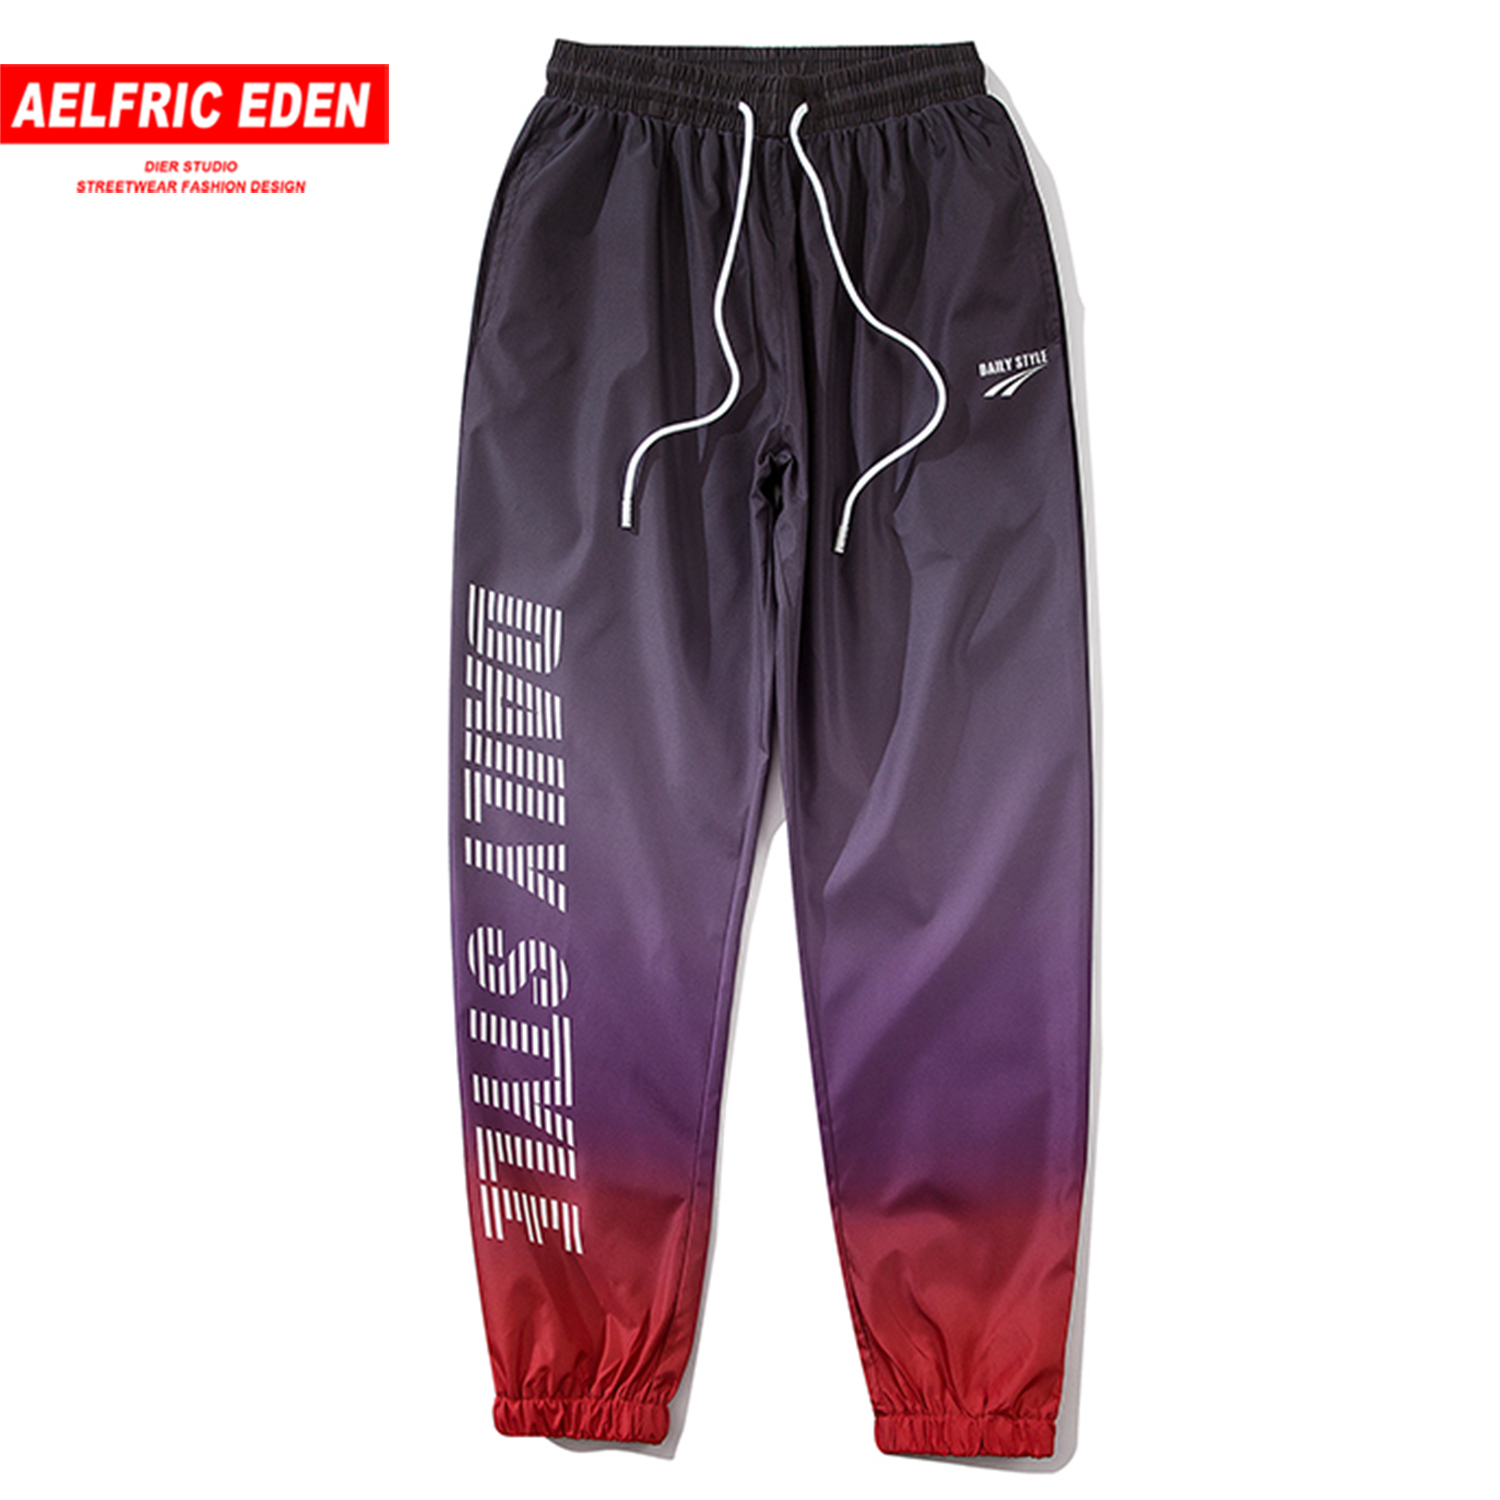 Aelfric Eden Hip Hop Sweatpants Letter Printed Gradient Pants 2020 Fashion Streetwear Harajuku Casual Joggers Men Trousers Black